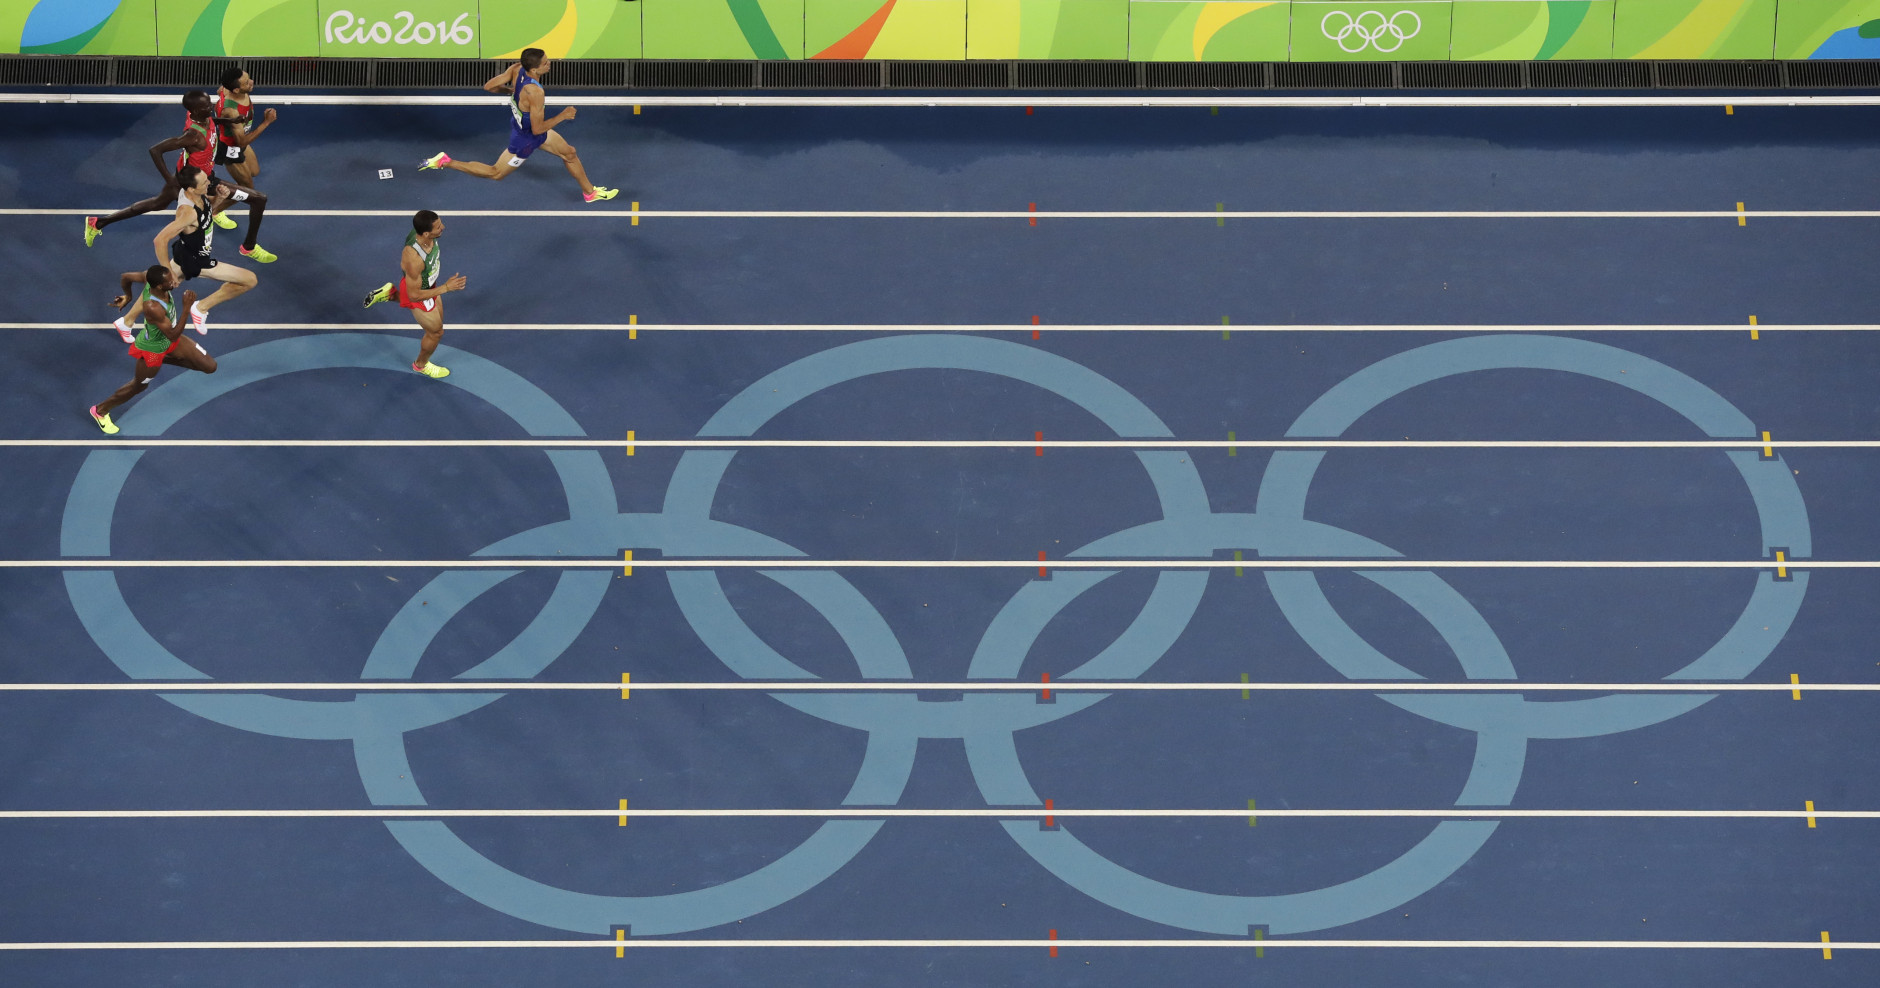 United States' Matthew Centrowitz wins a gold medal in the 1500 meter finals during the athletics competitions of the 2016 Summer Olympics at the Olympic stadium in Rio de Janeiro, Brazil, Saturday, Aug. 20, 2016. (AP Photo/Morry Gash)